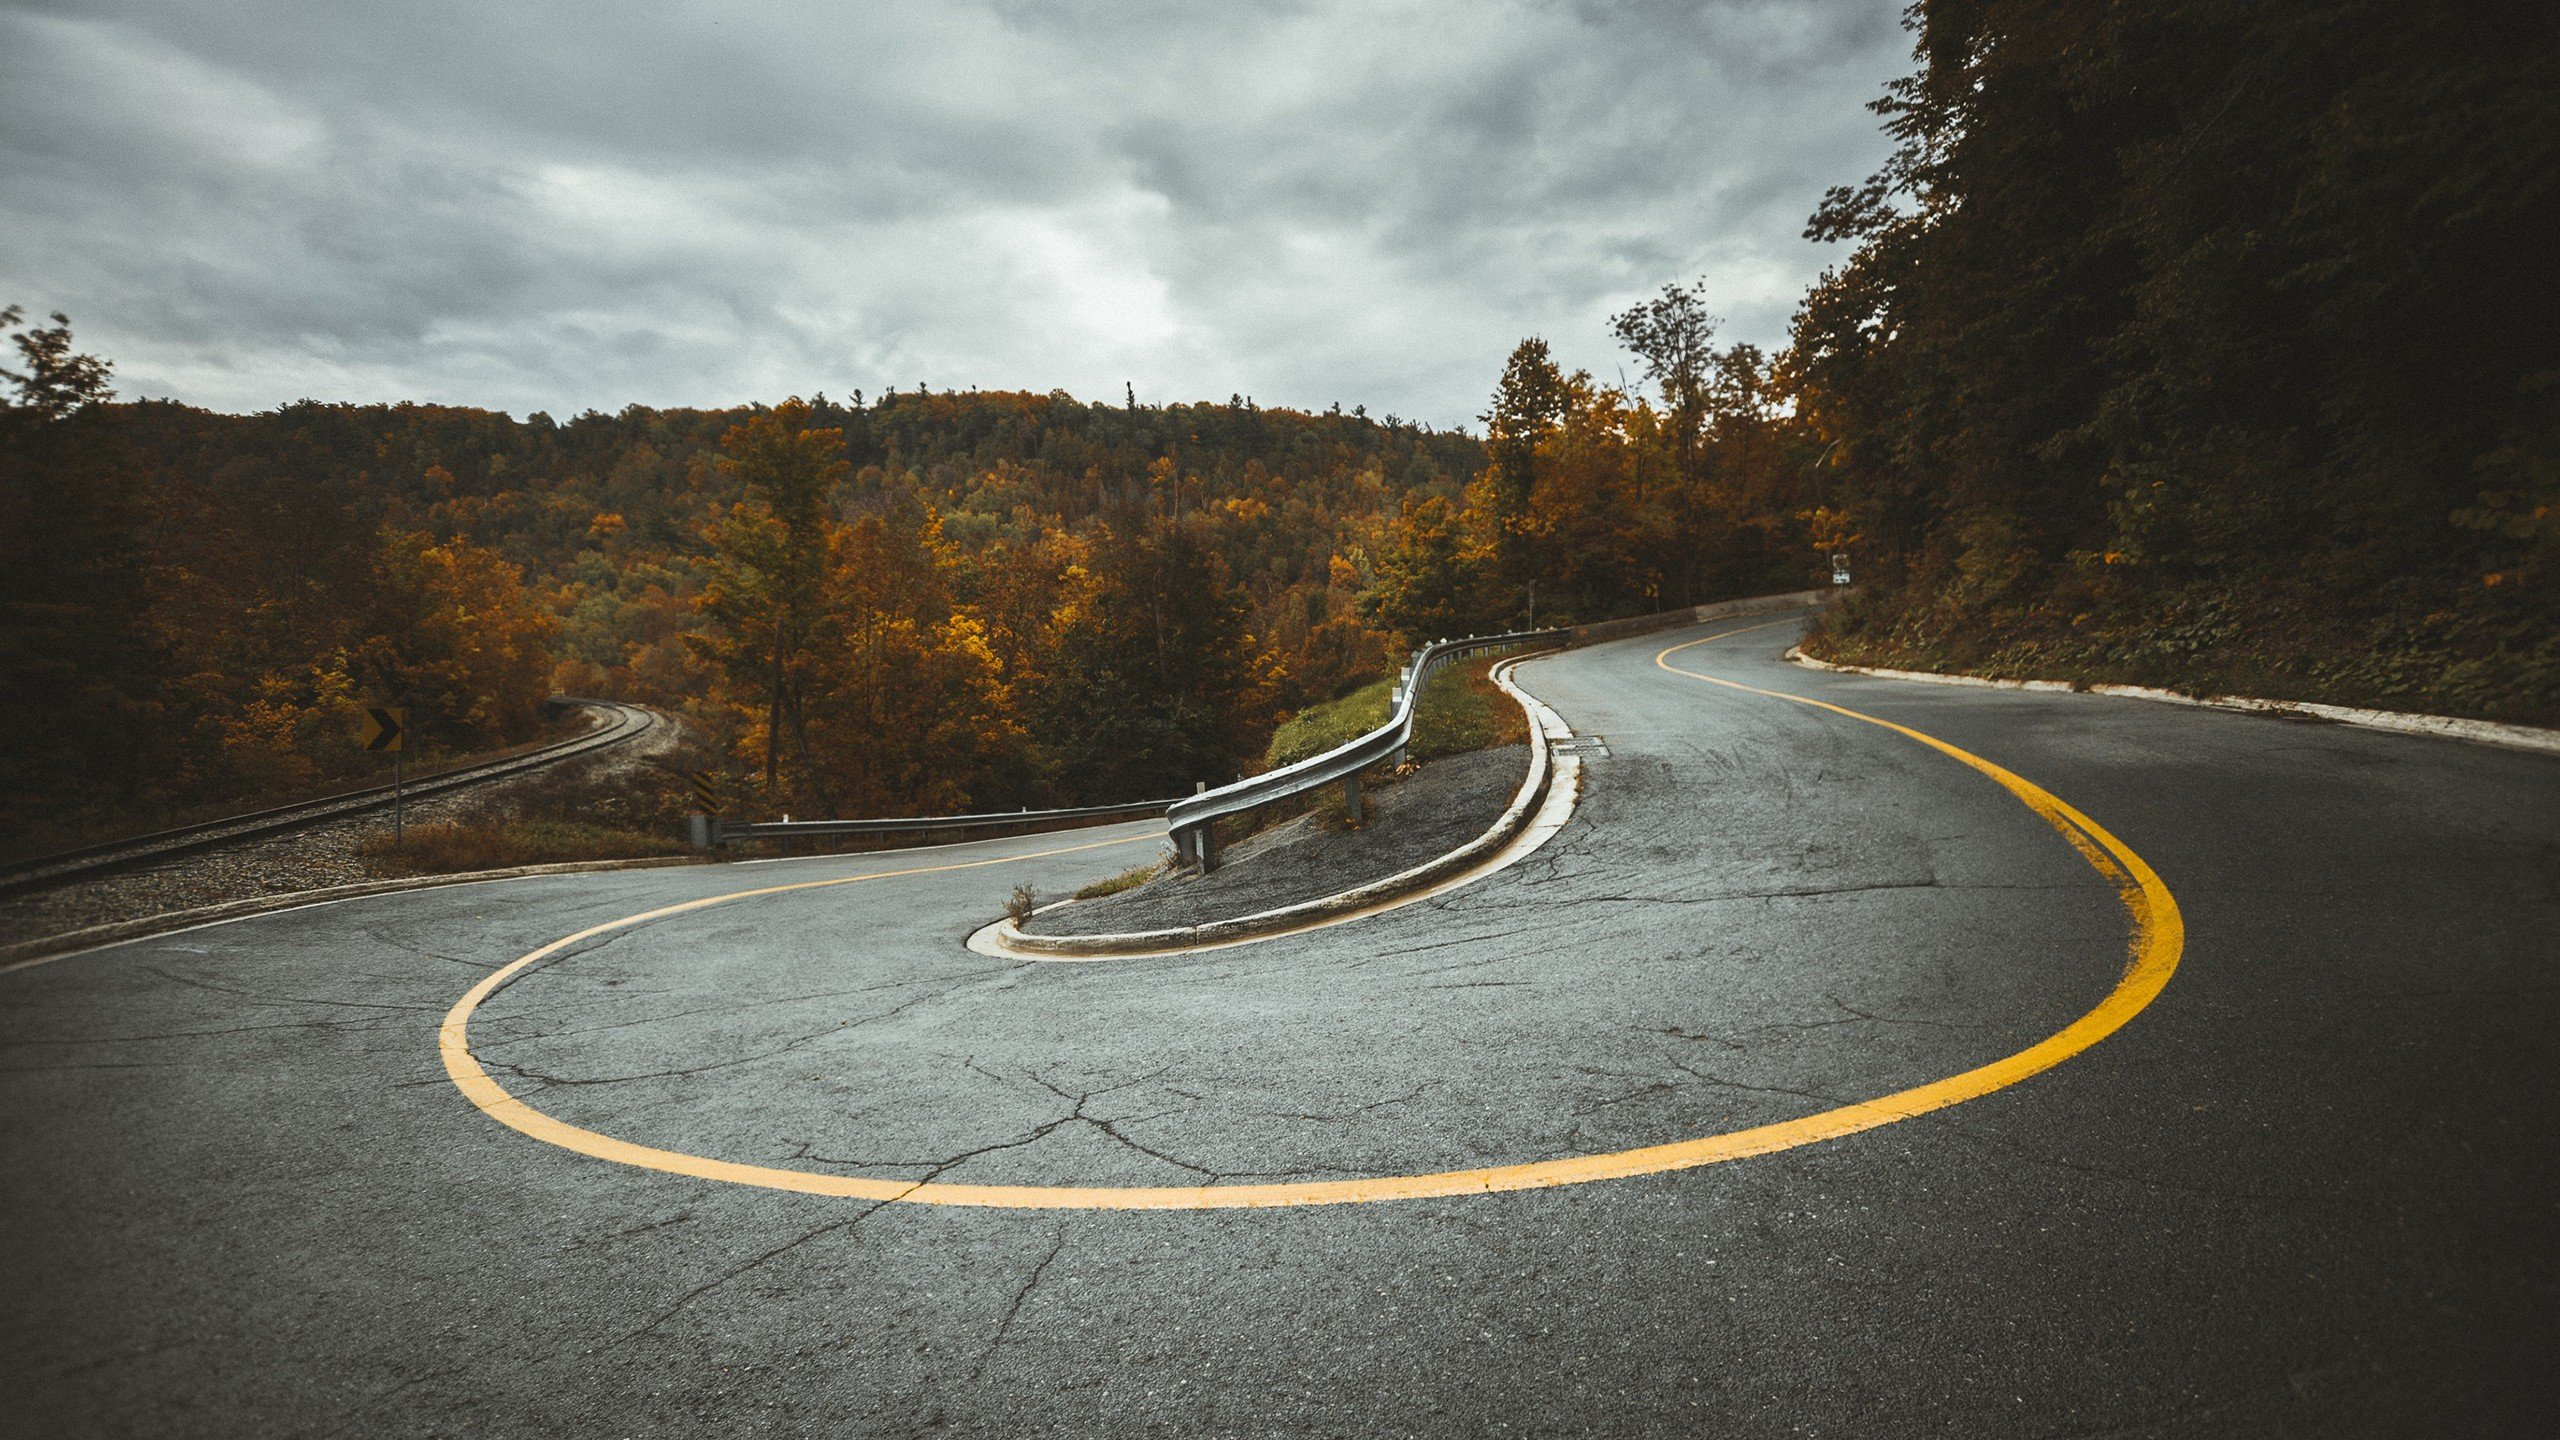 Road hairpin turns railroad track hd wallpapers desktop and mobile images photos - Track wallpaper hd ...